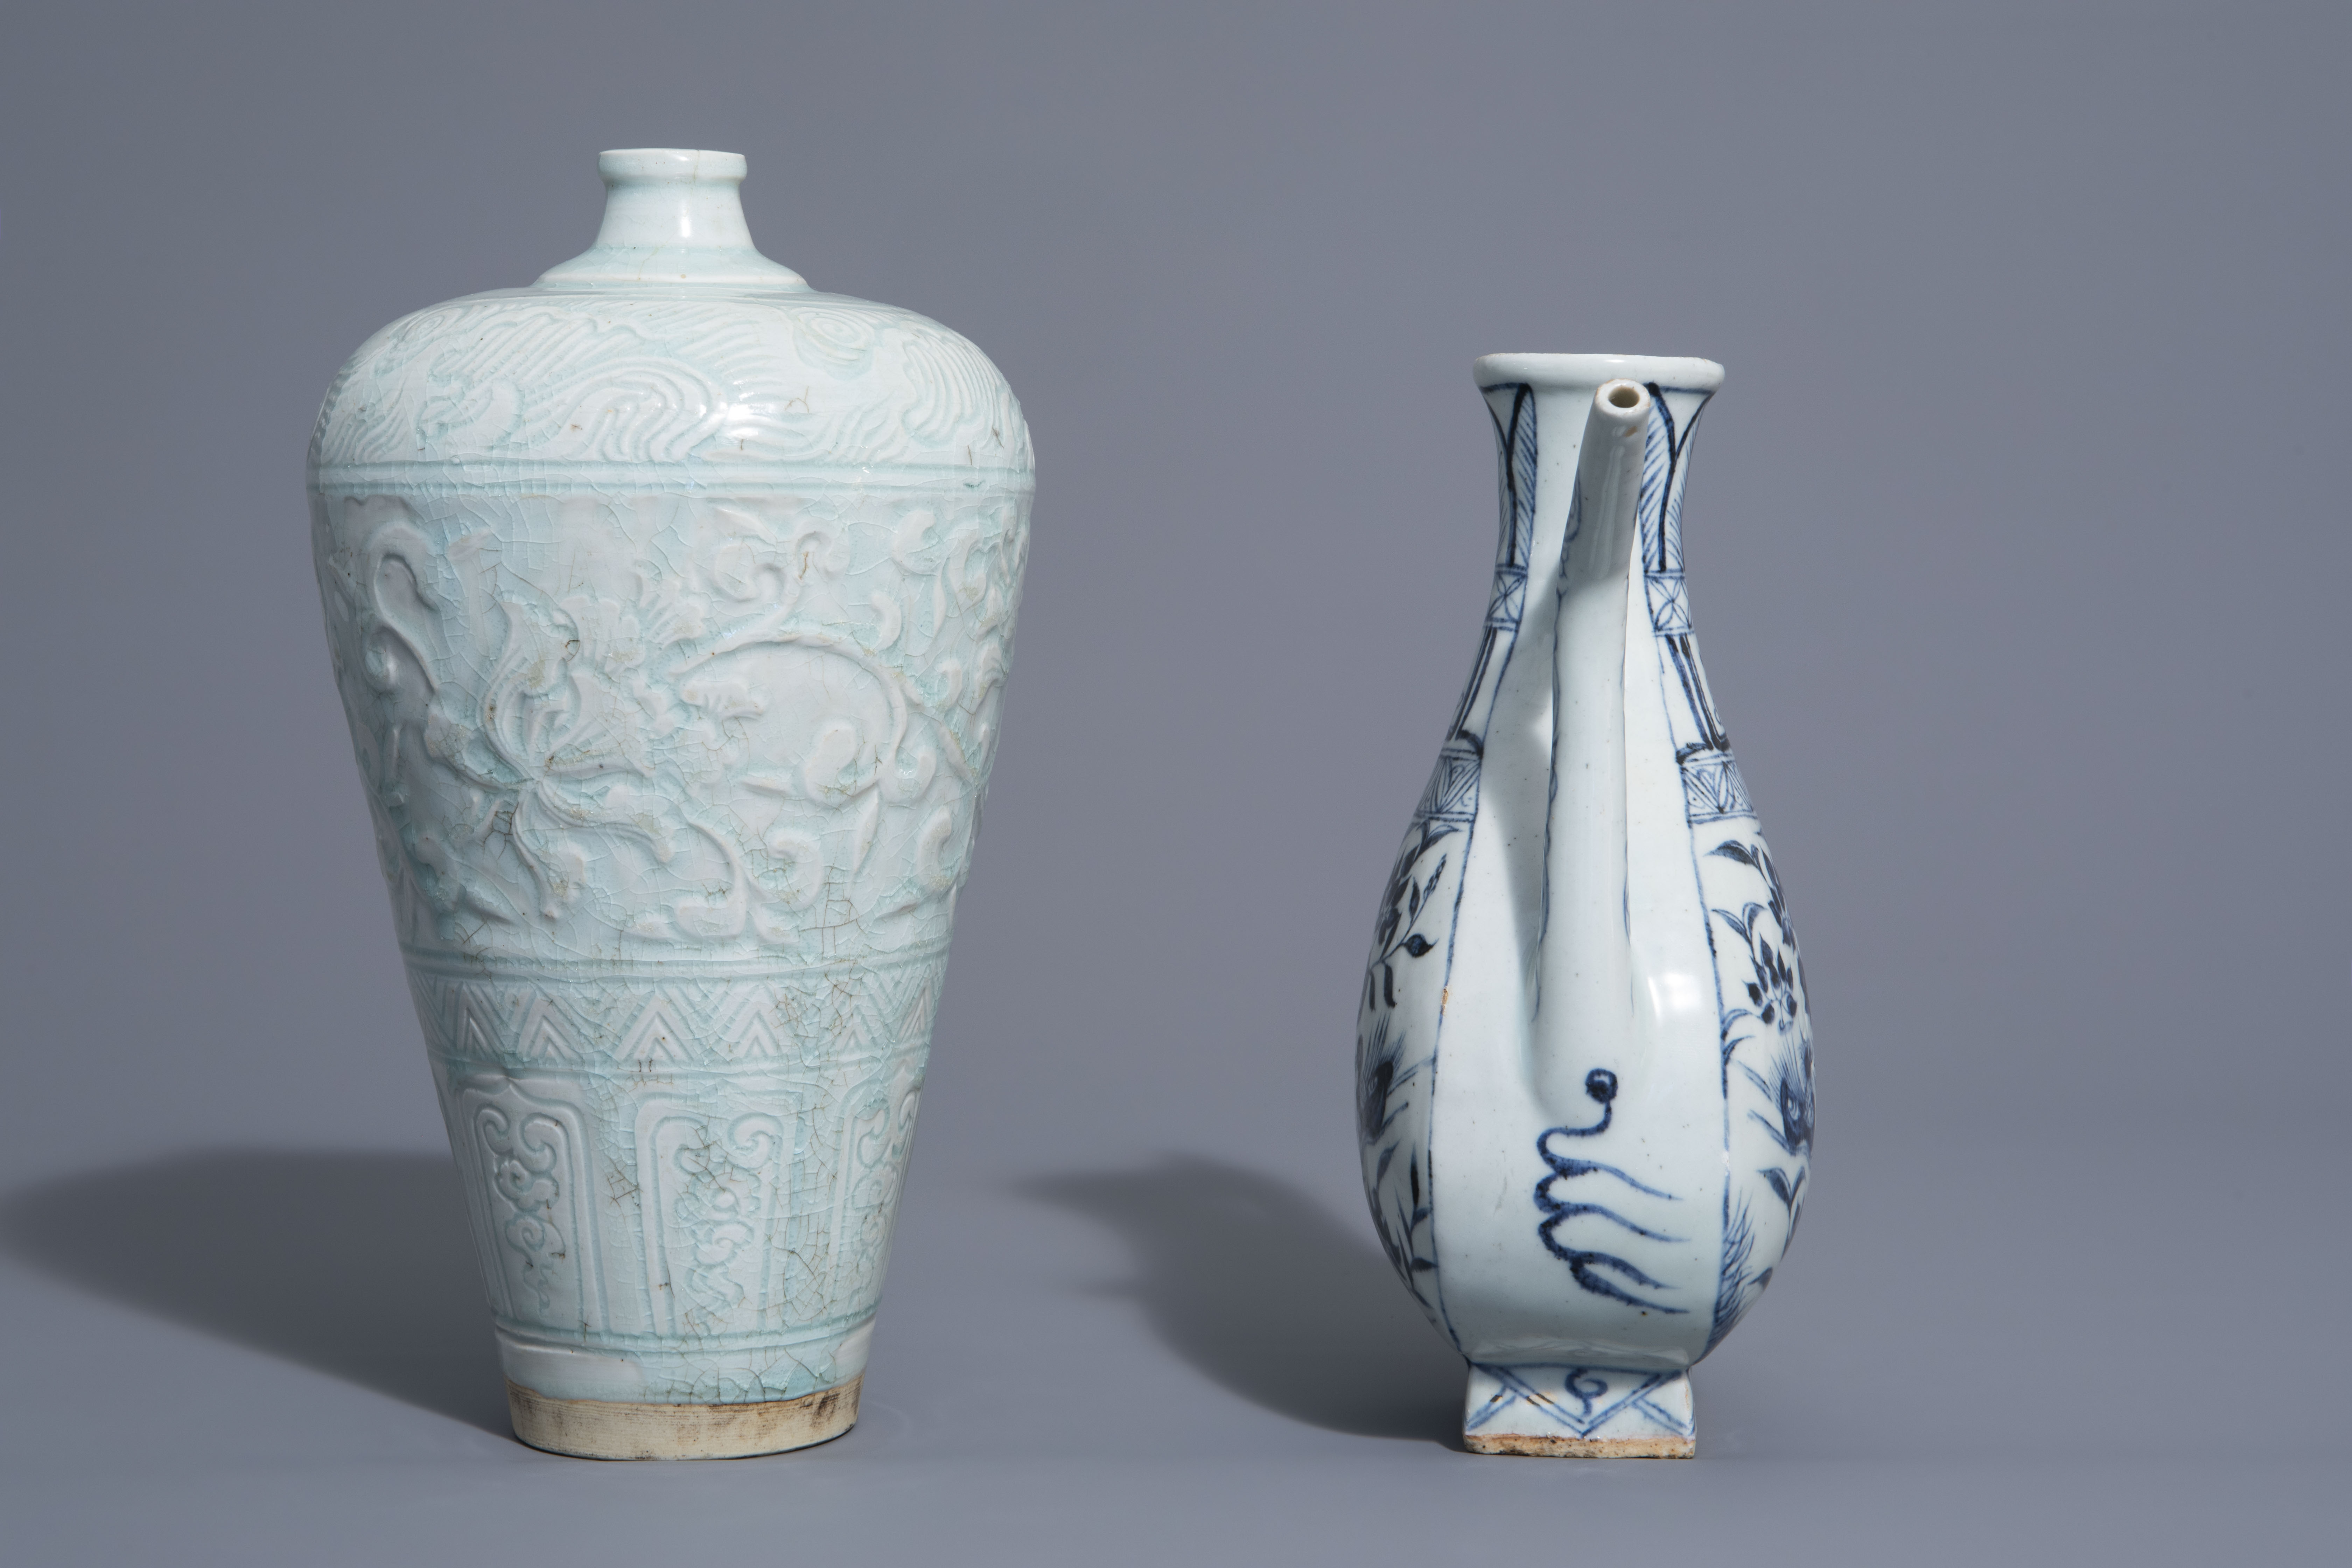 A Chinese blue and white jug and a qingbai vase in Yuan style, 19th/20th C. - Image 4 of 6